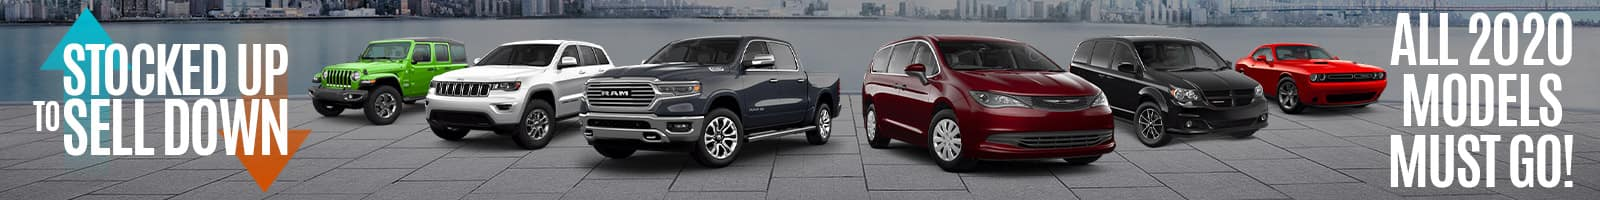 Best price on a new 2020 vehicle near Plainfield, IN